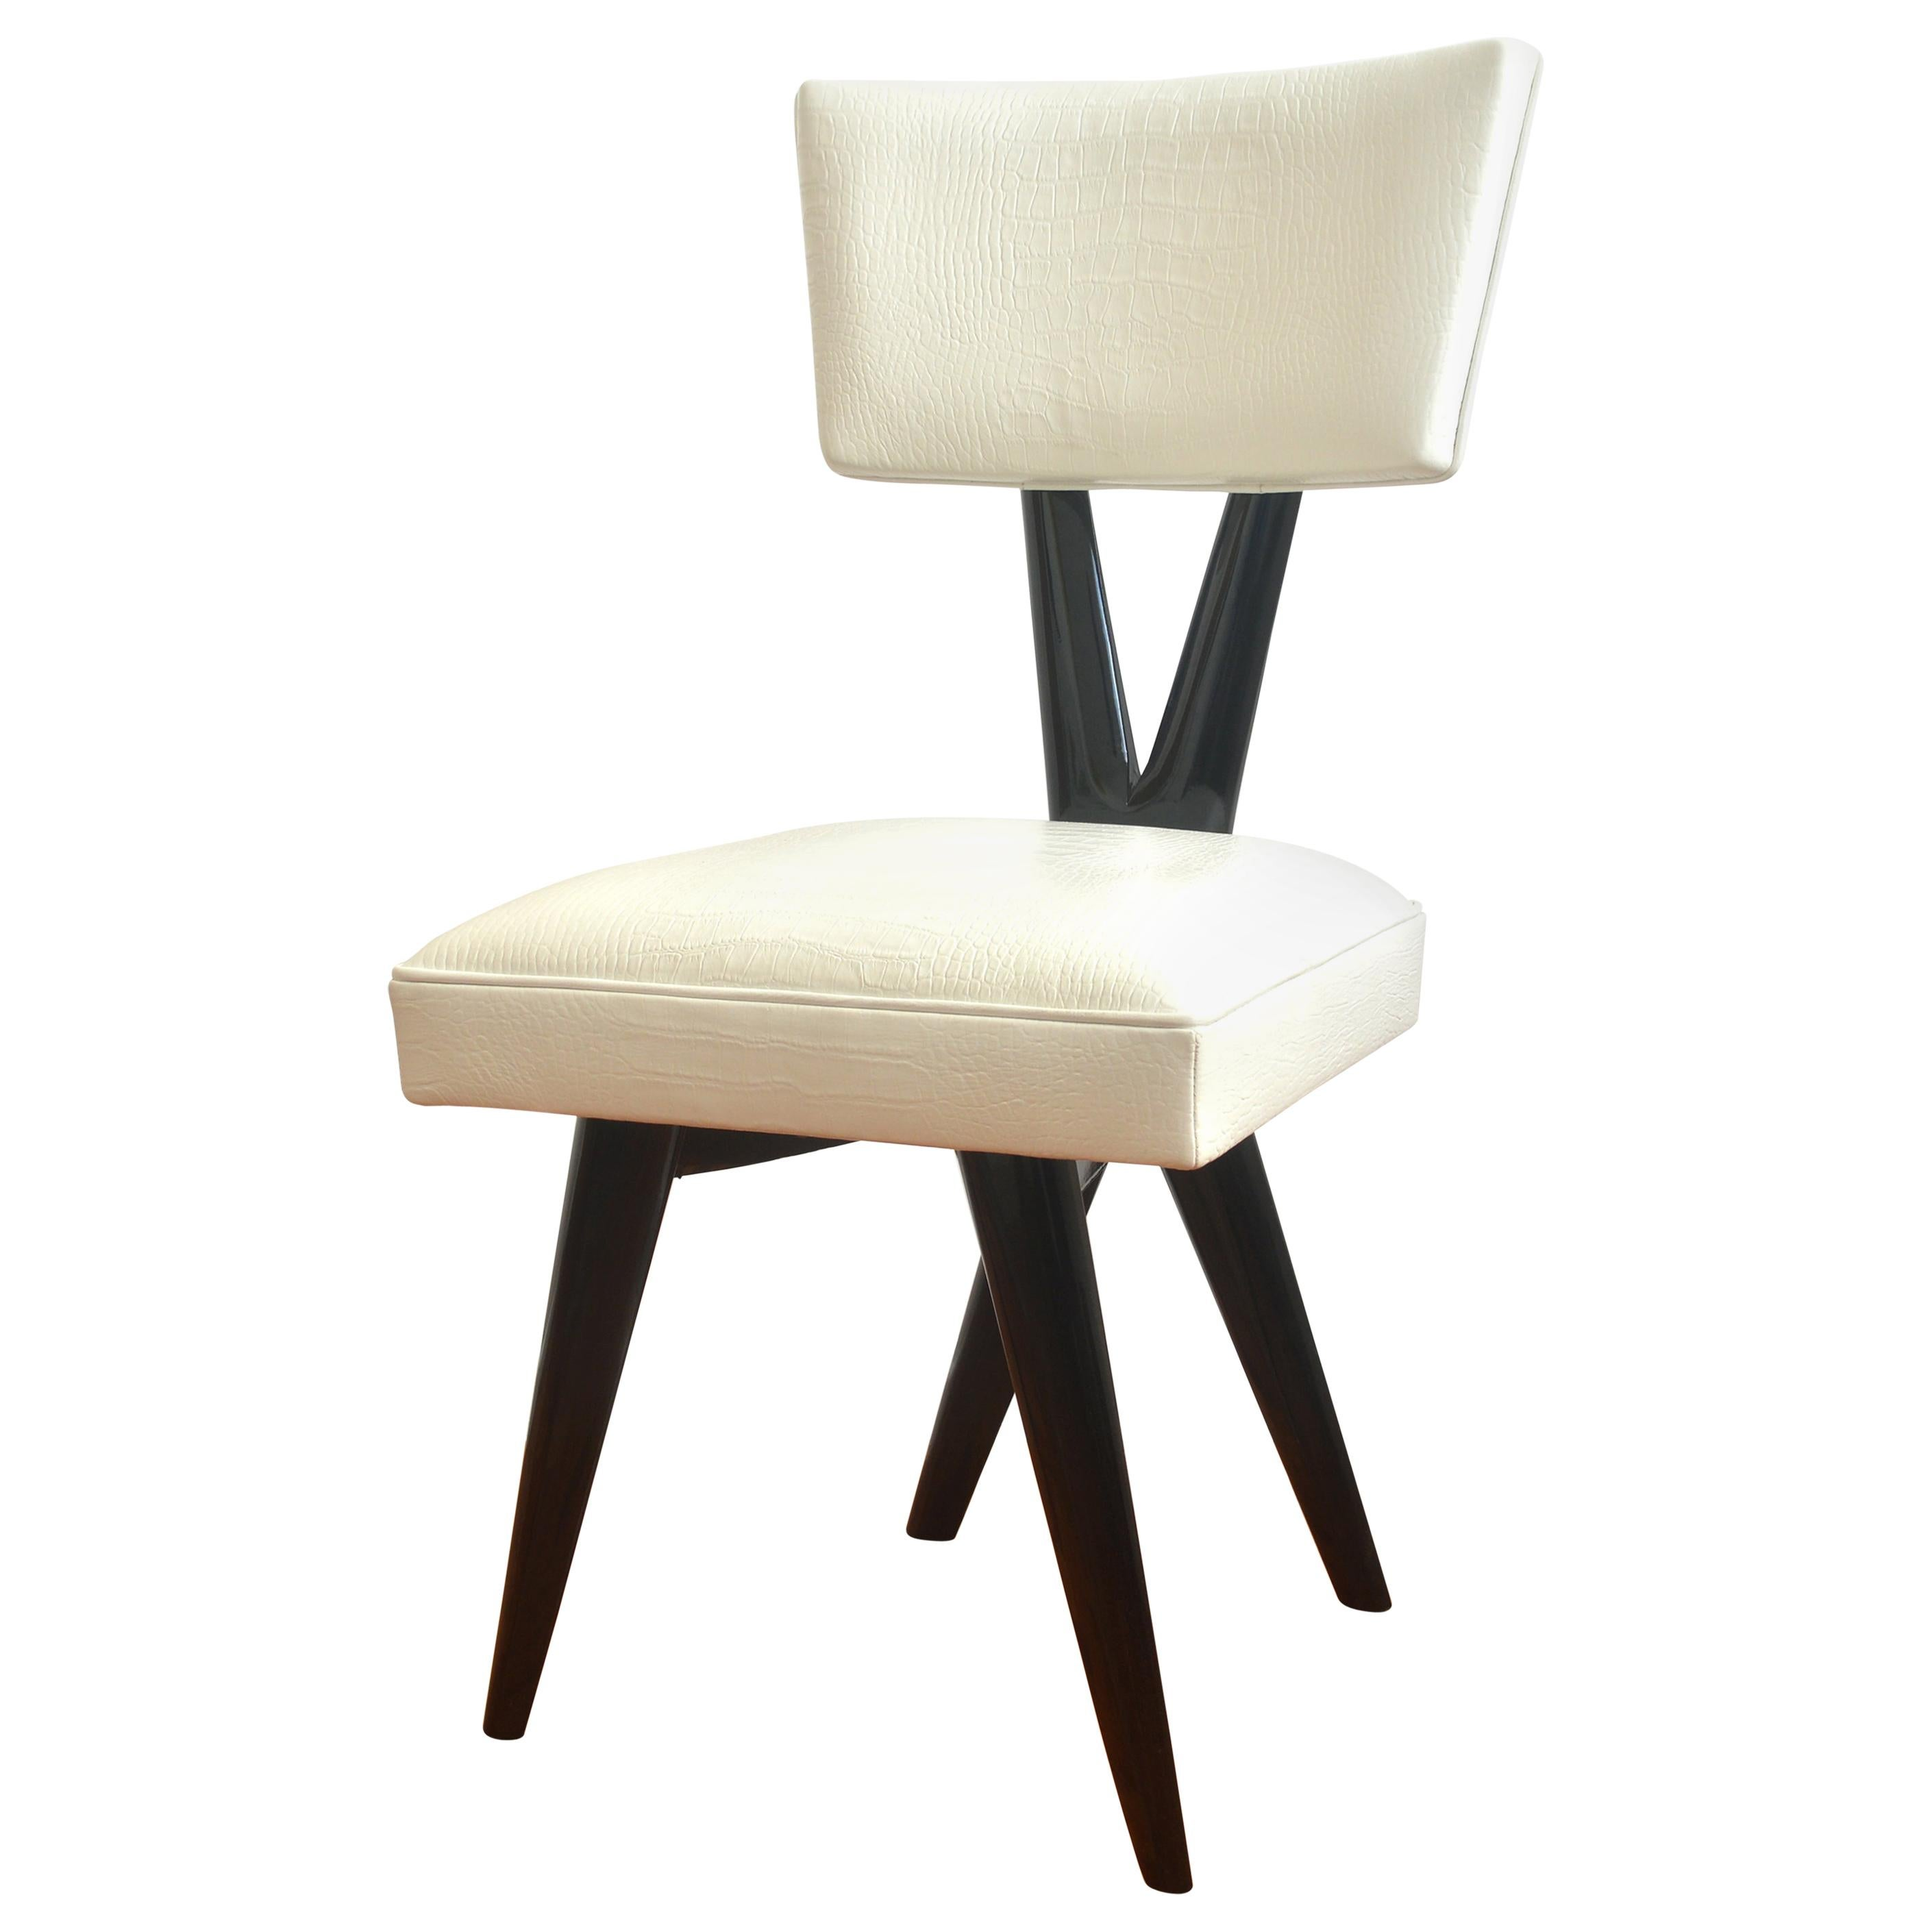 Giuseppe Scapinelli Ebonized Dining Chair Made in the 1950's